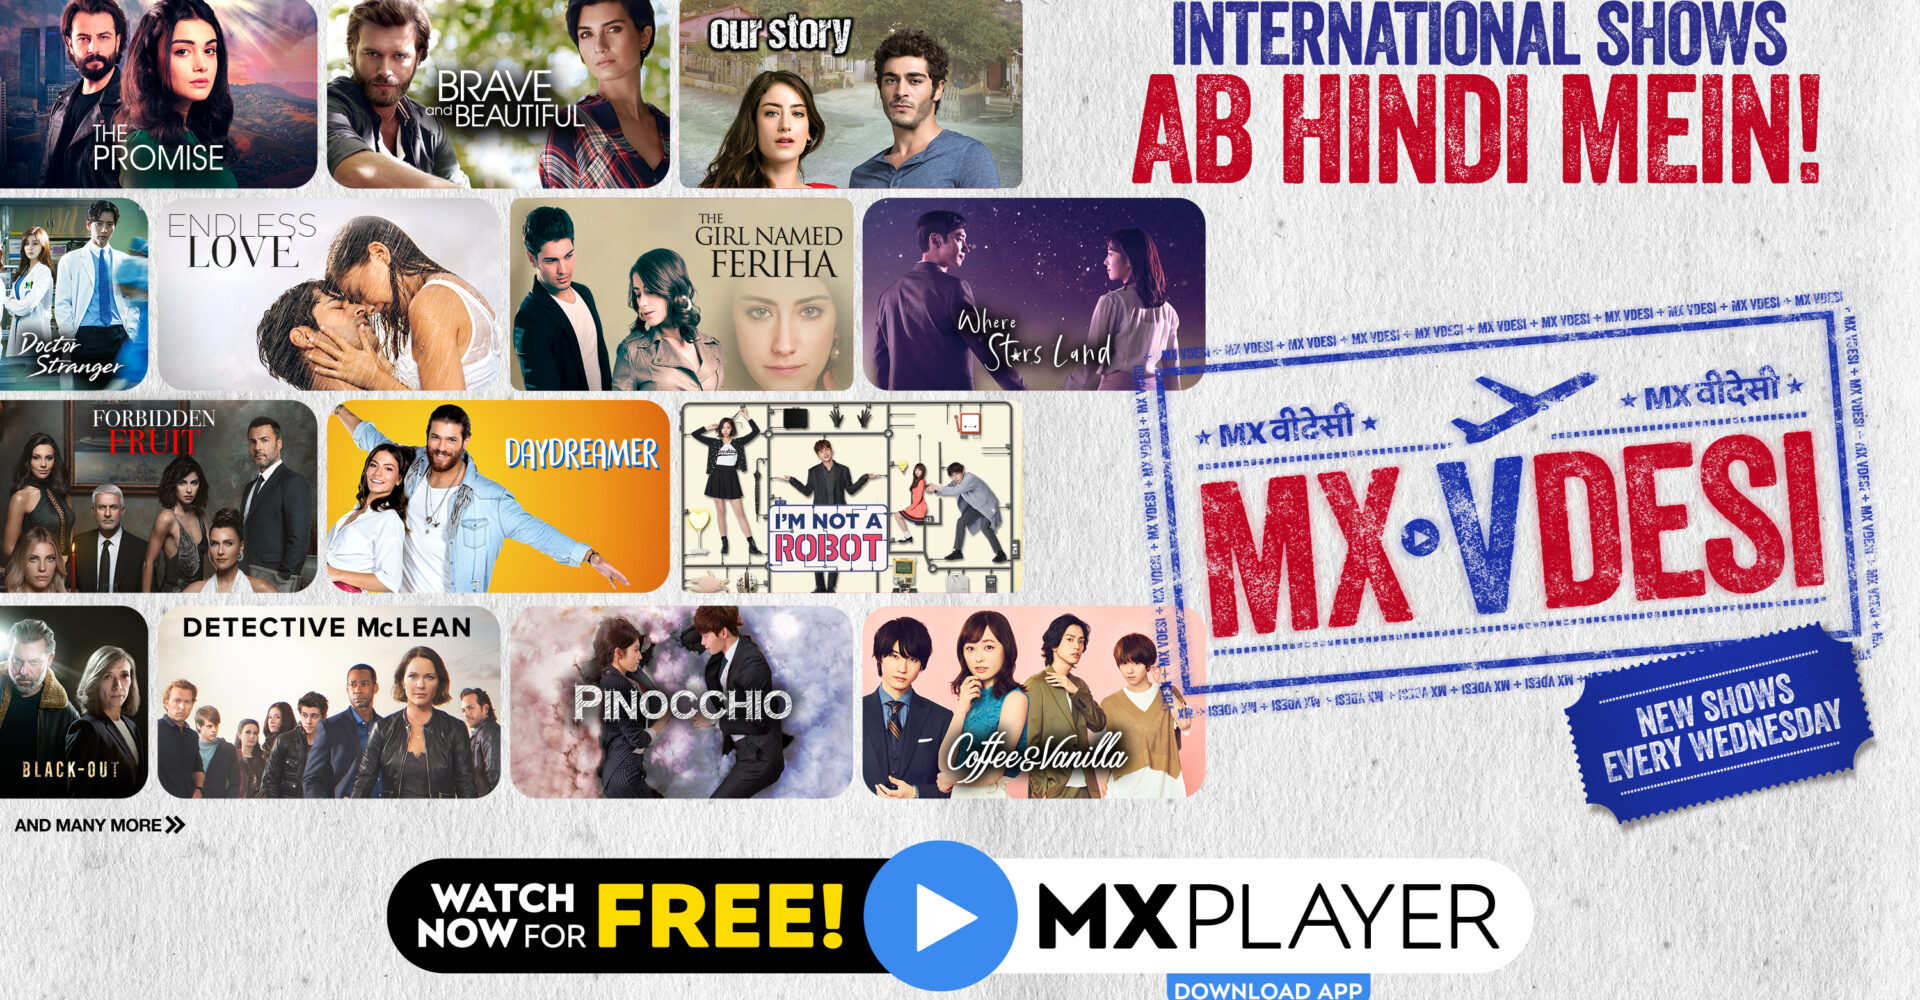 'MX VDesi' to host international shows dubbed in Hindi, Tamil & Telugu